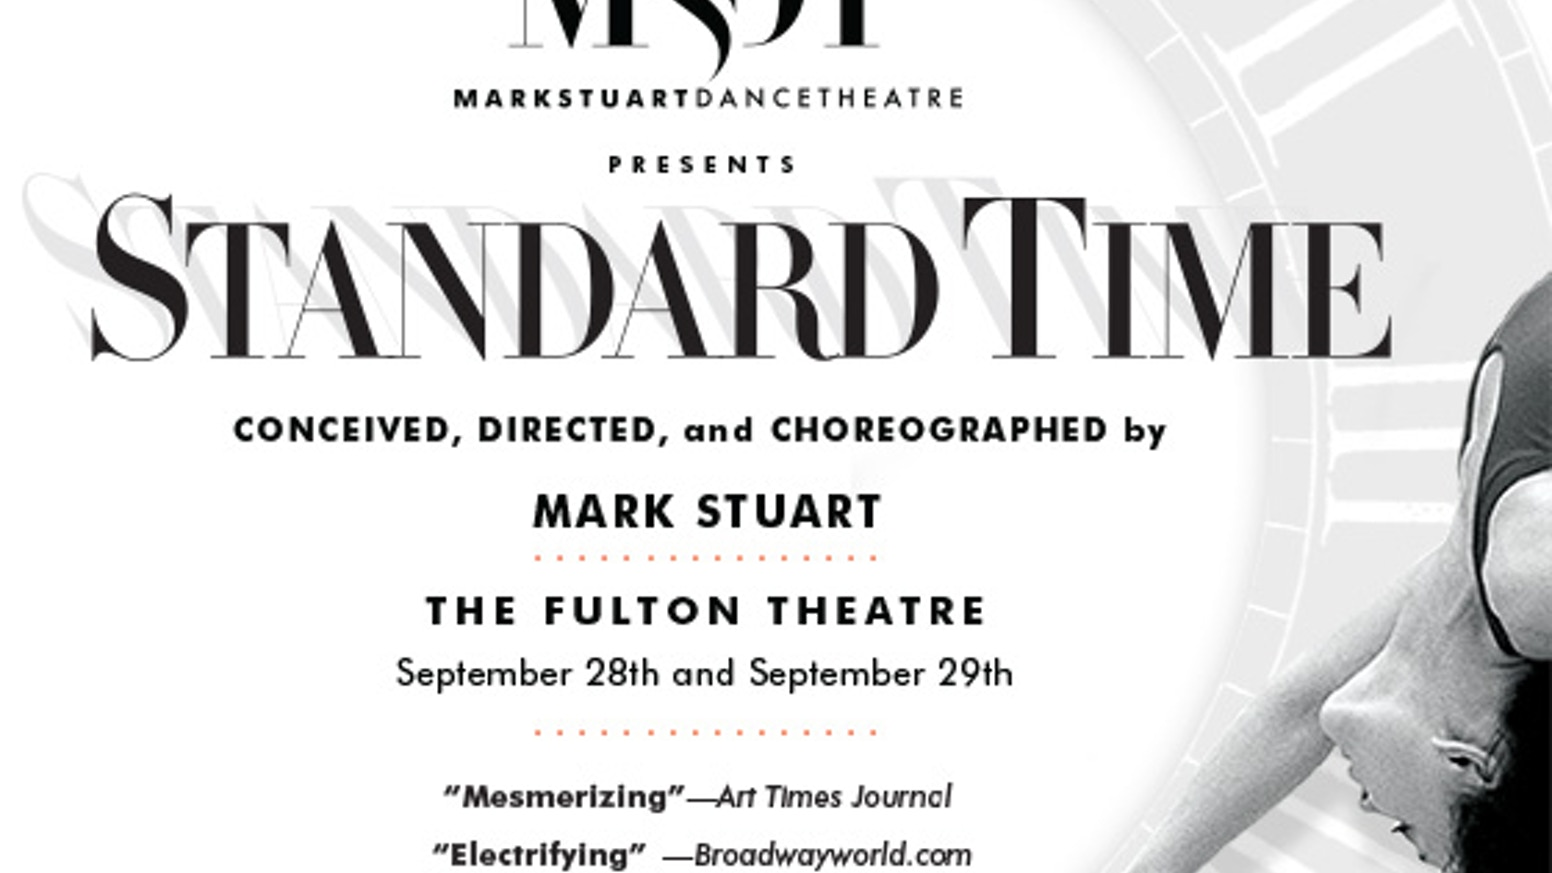 STANDARD TIME is a gravity-defying dance musical about passion and love coming face to face with intolerance and social conflict.